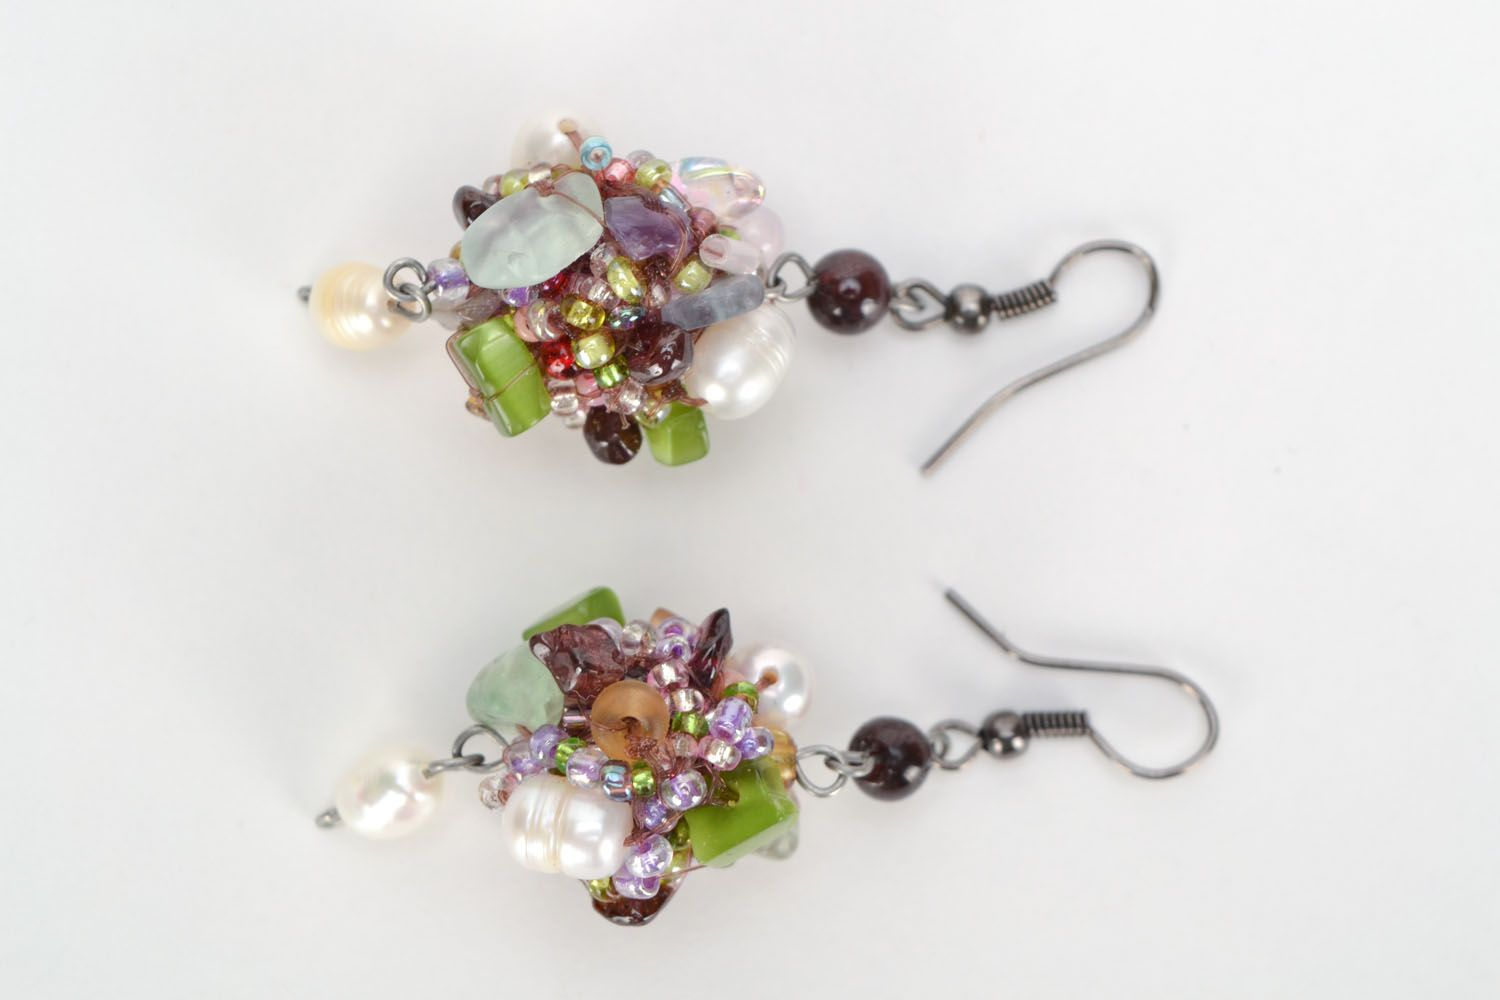 Homemade earrings with river pearls and natural stones photo 2